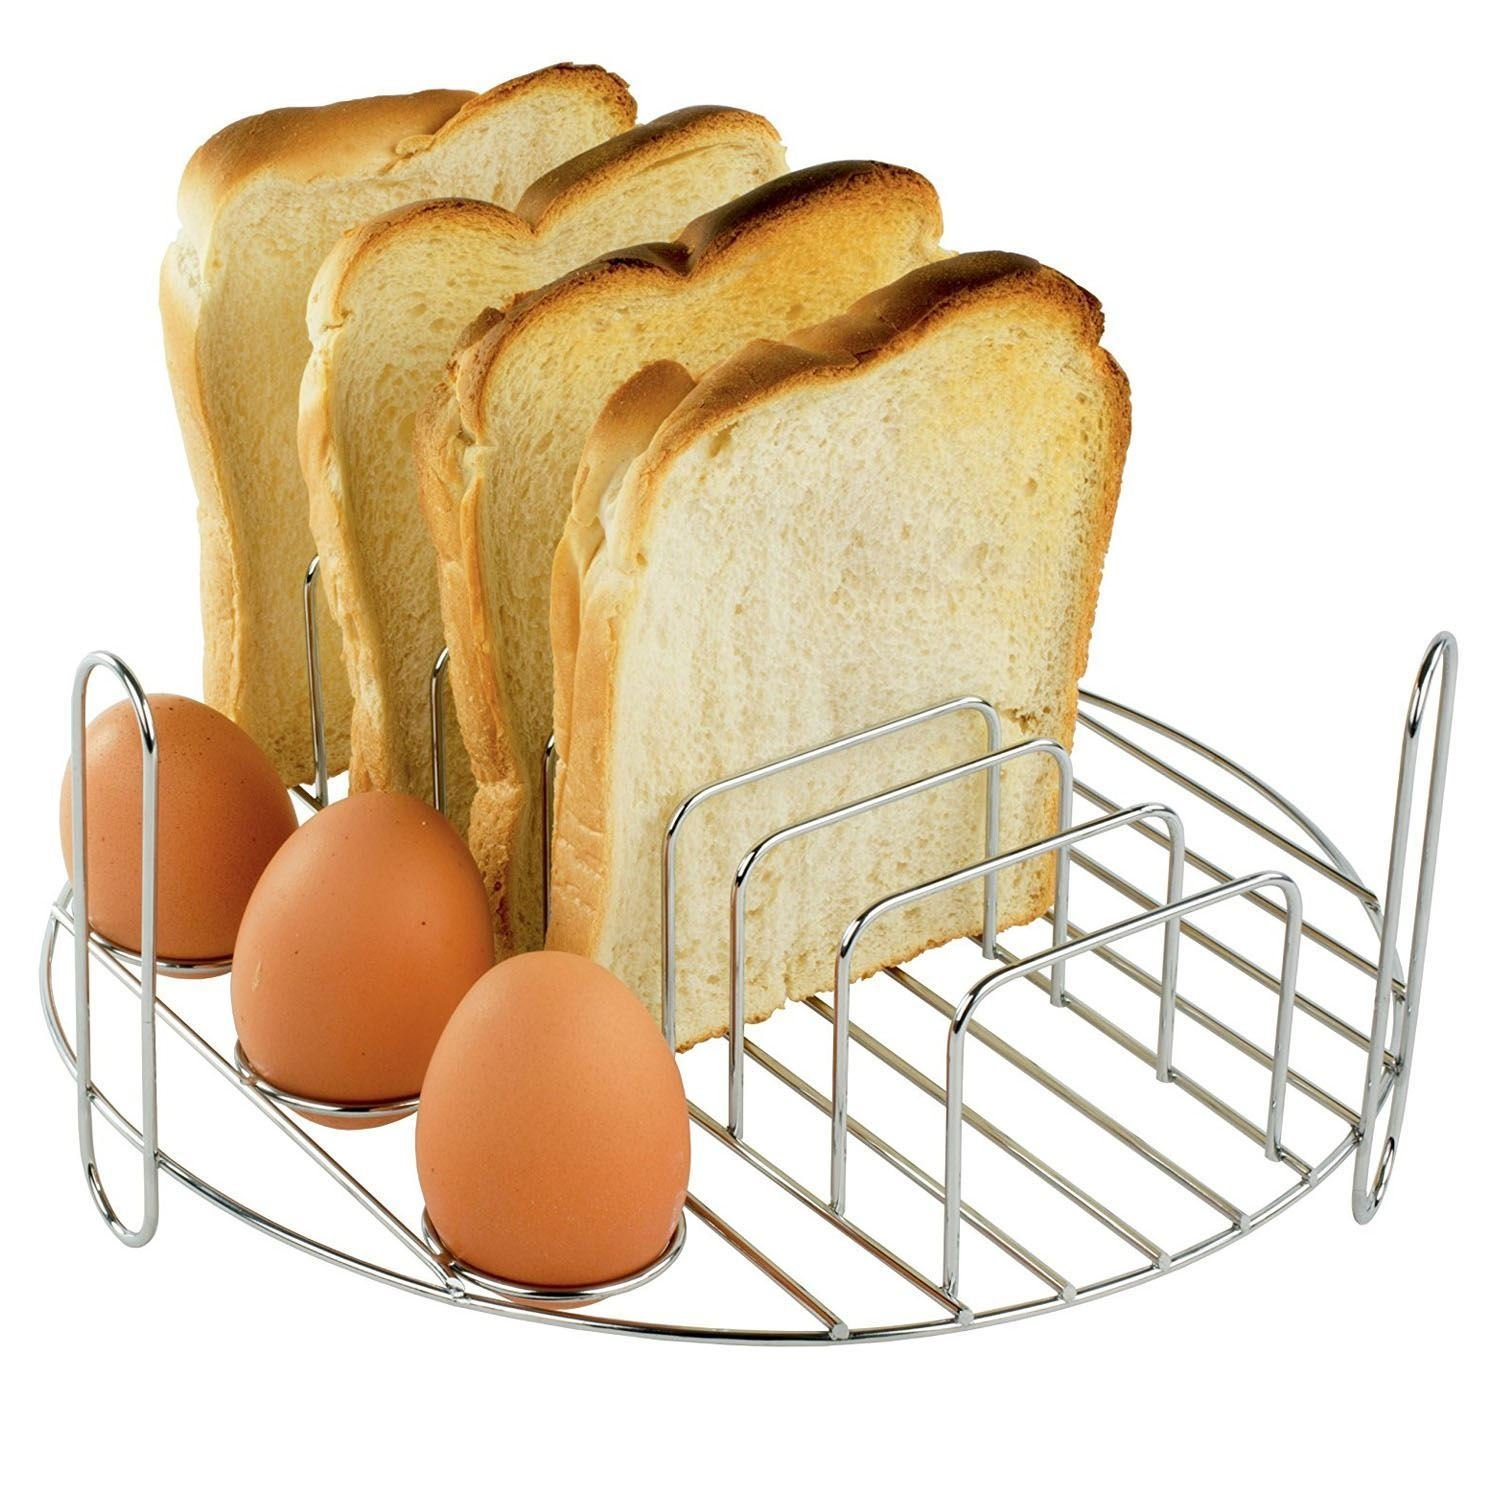 Unibos Halogen Oven Breakfast Rack For 10-12 Litre Ovens Brand New